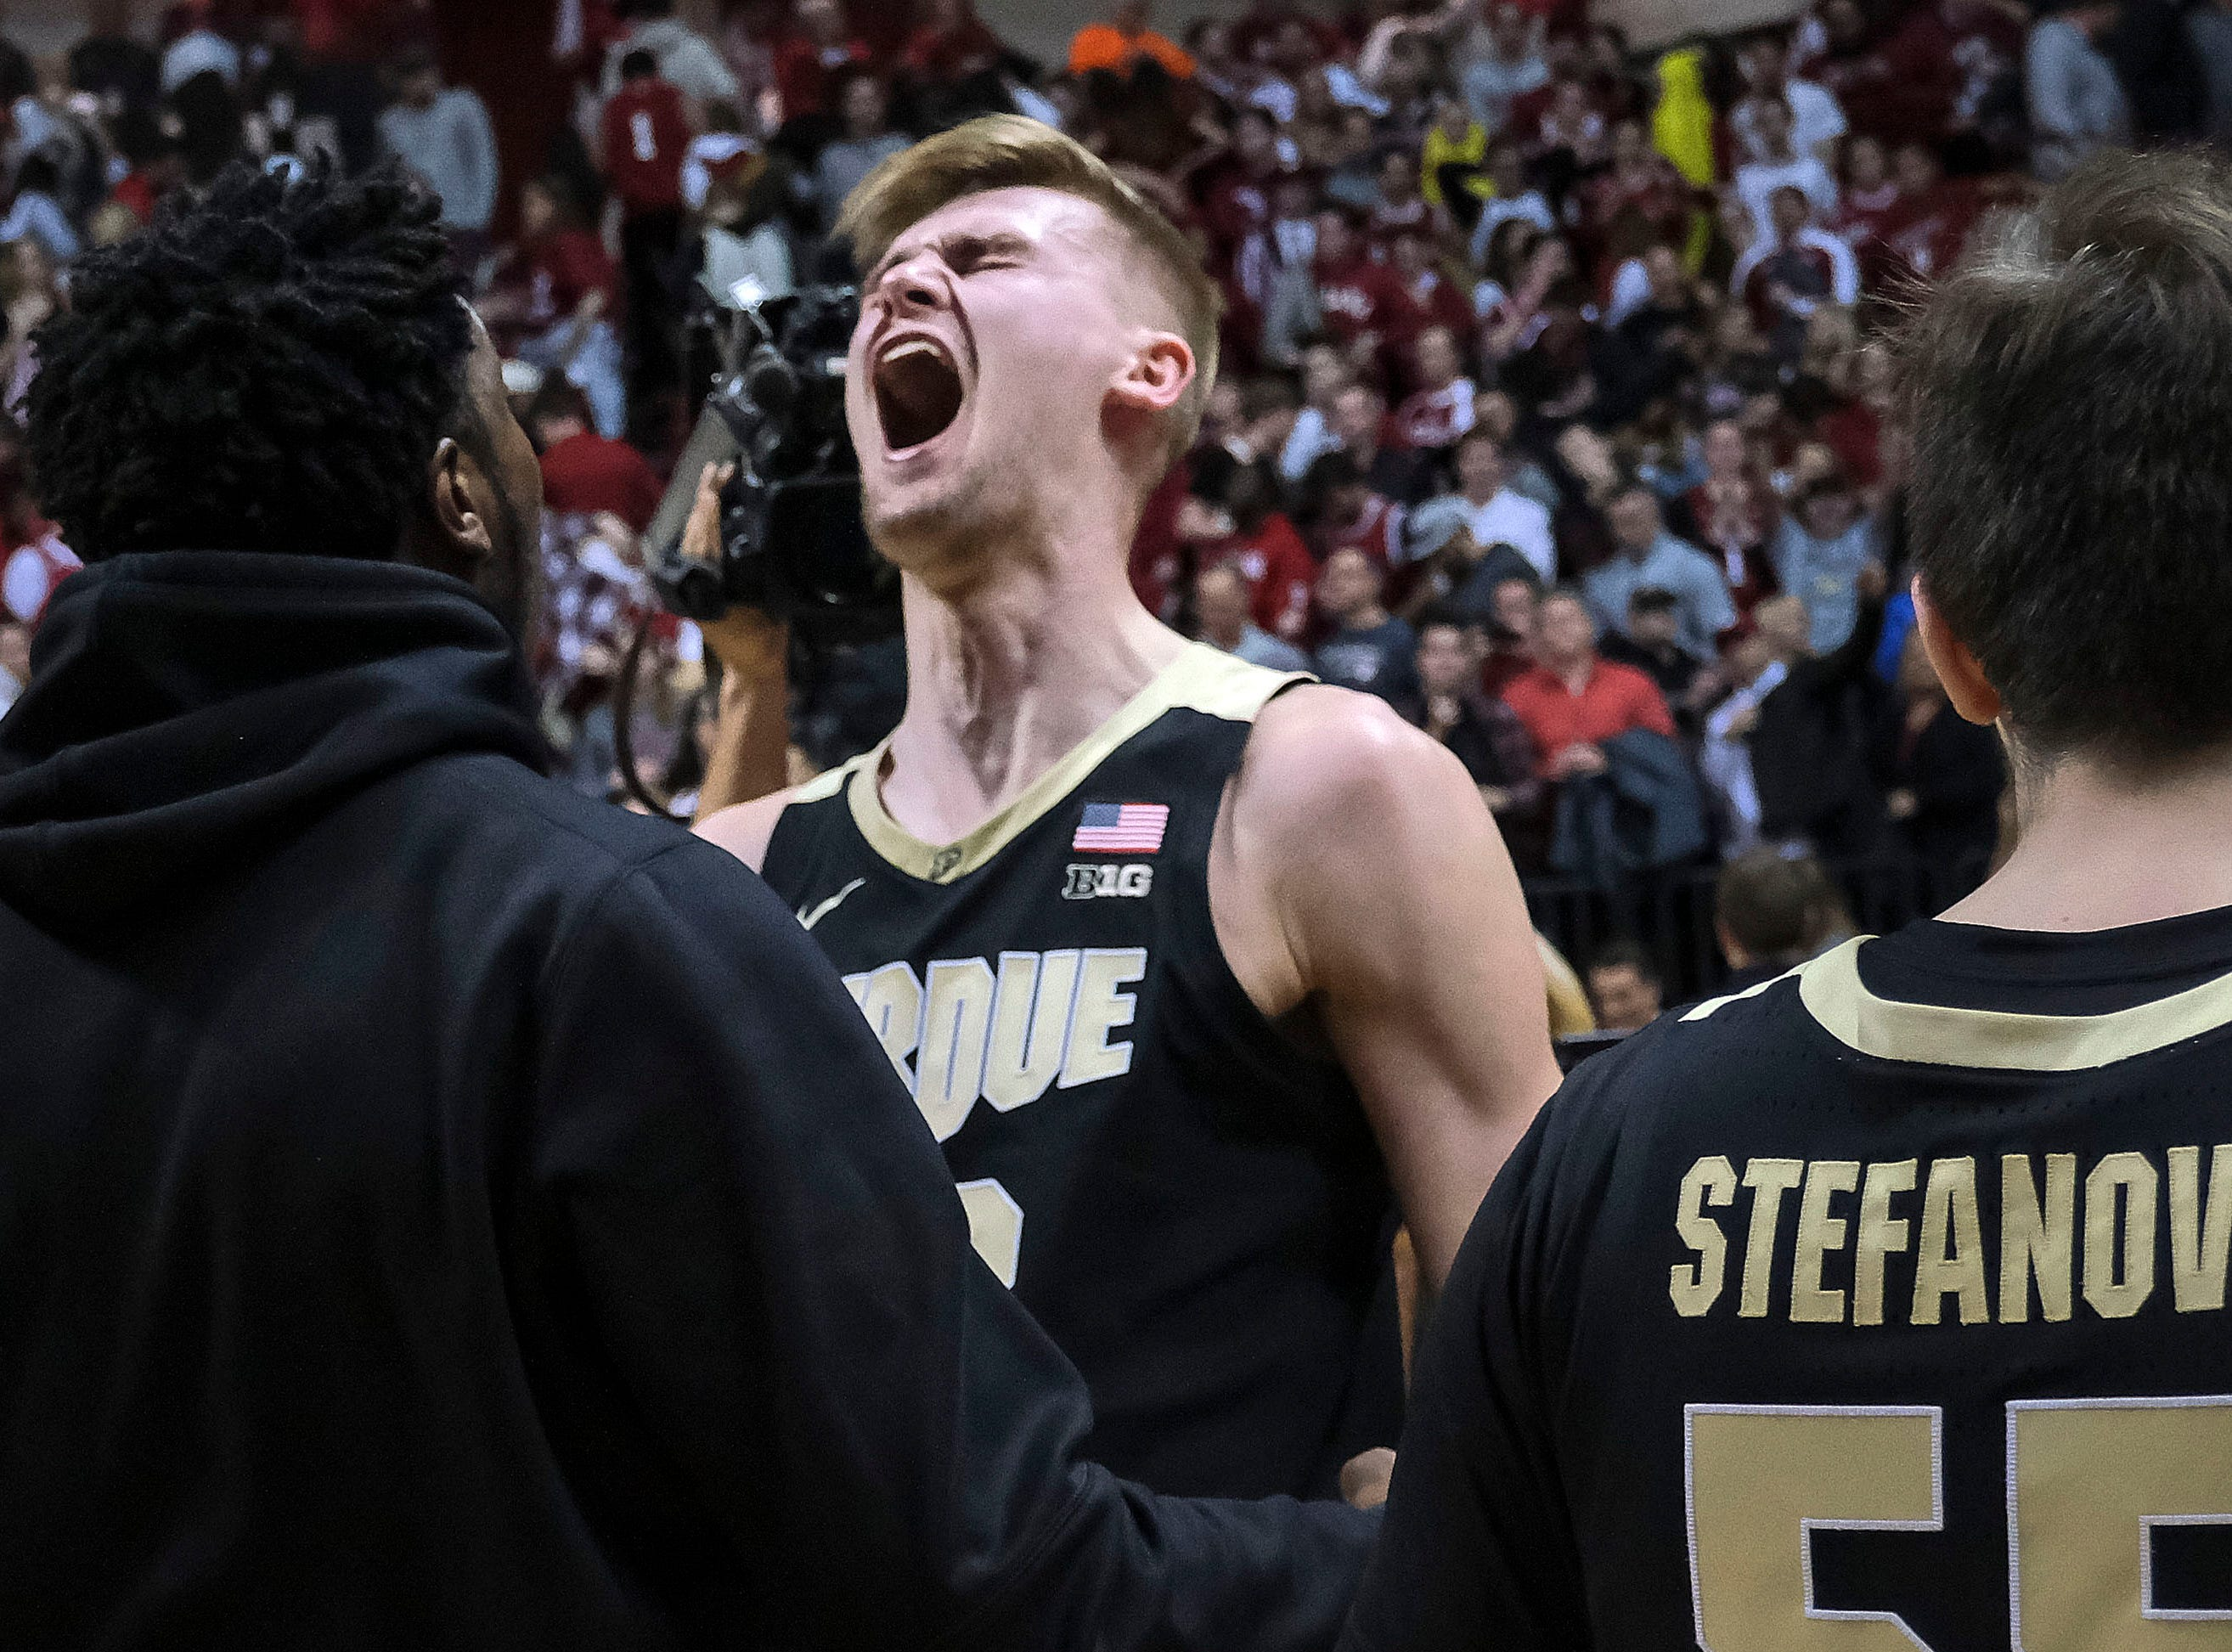 Purdue center Matt Haarms reacts to the team's 48-46 win over Indiana in an NCAA college basketball game in Bloomington, Ind., Tuesday, Feb. 19, 2019.